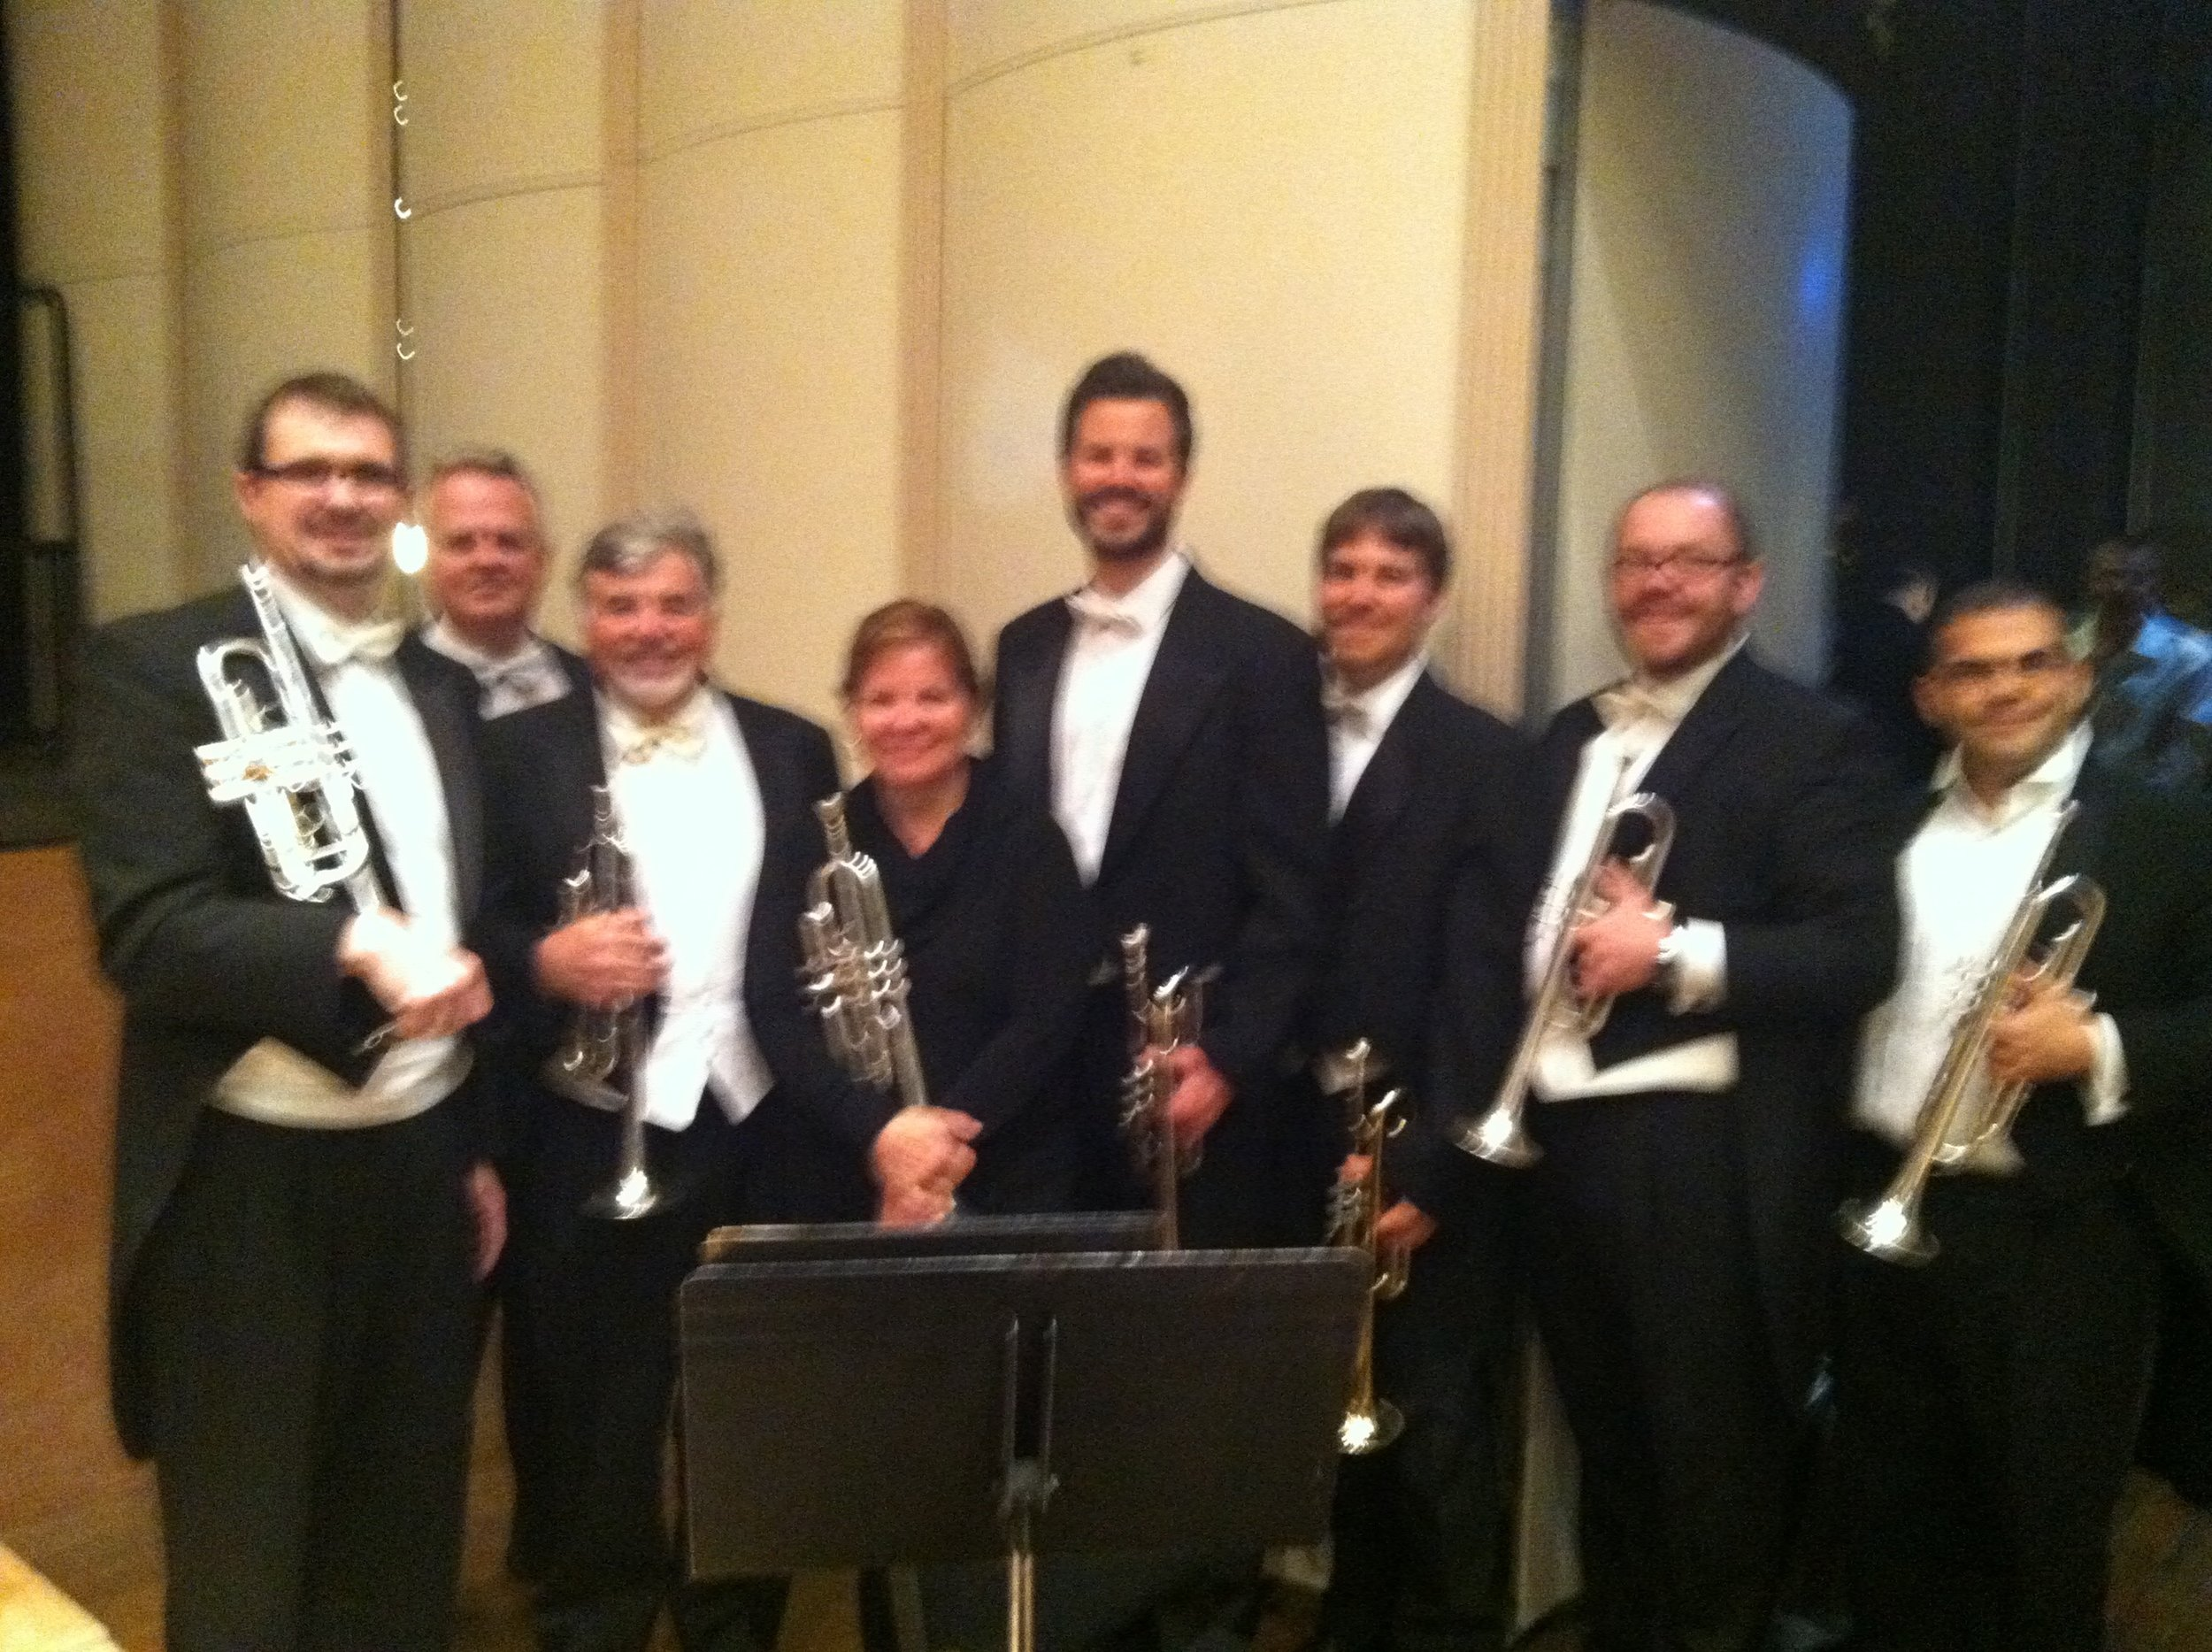 Rhode Island Philharmonic Mahler 2 trumpet section